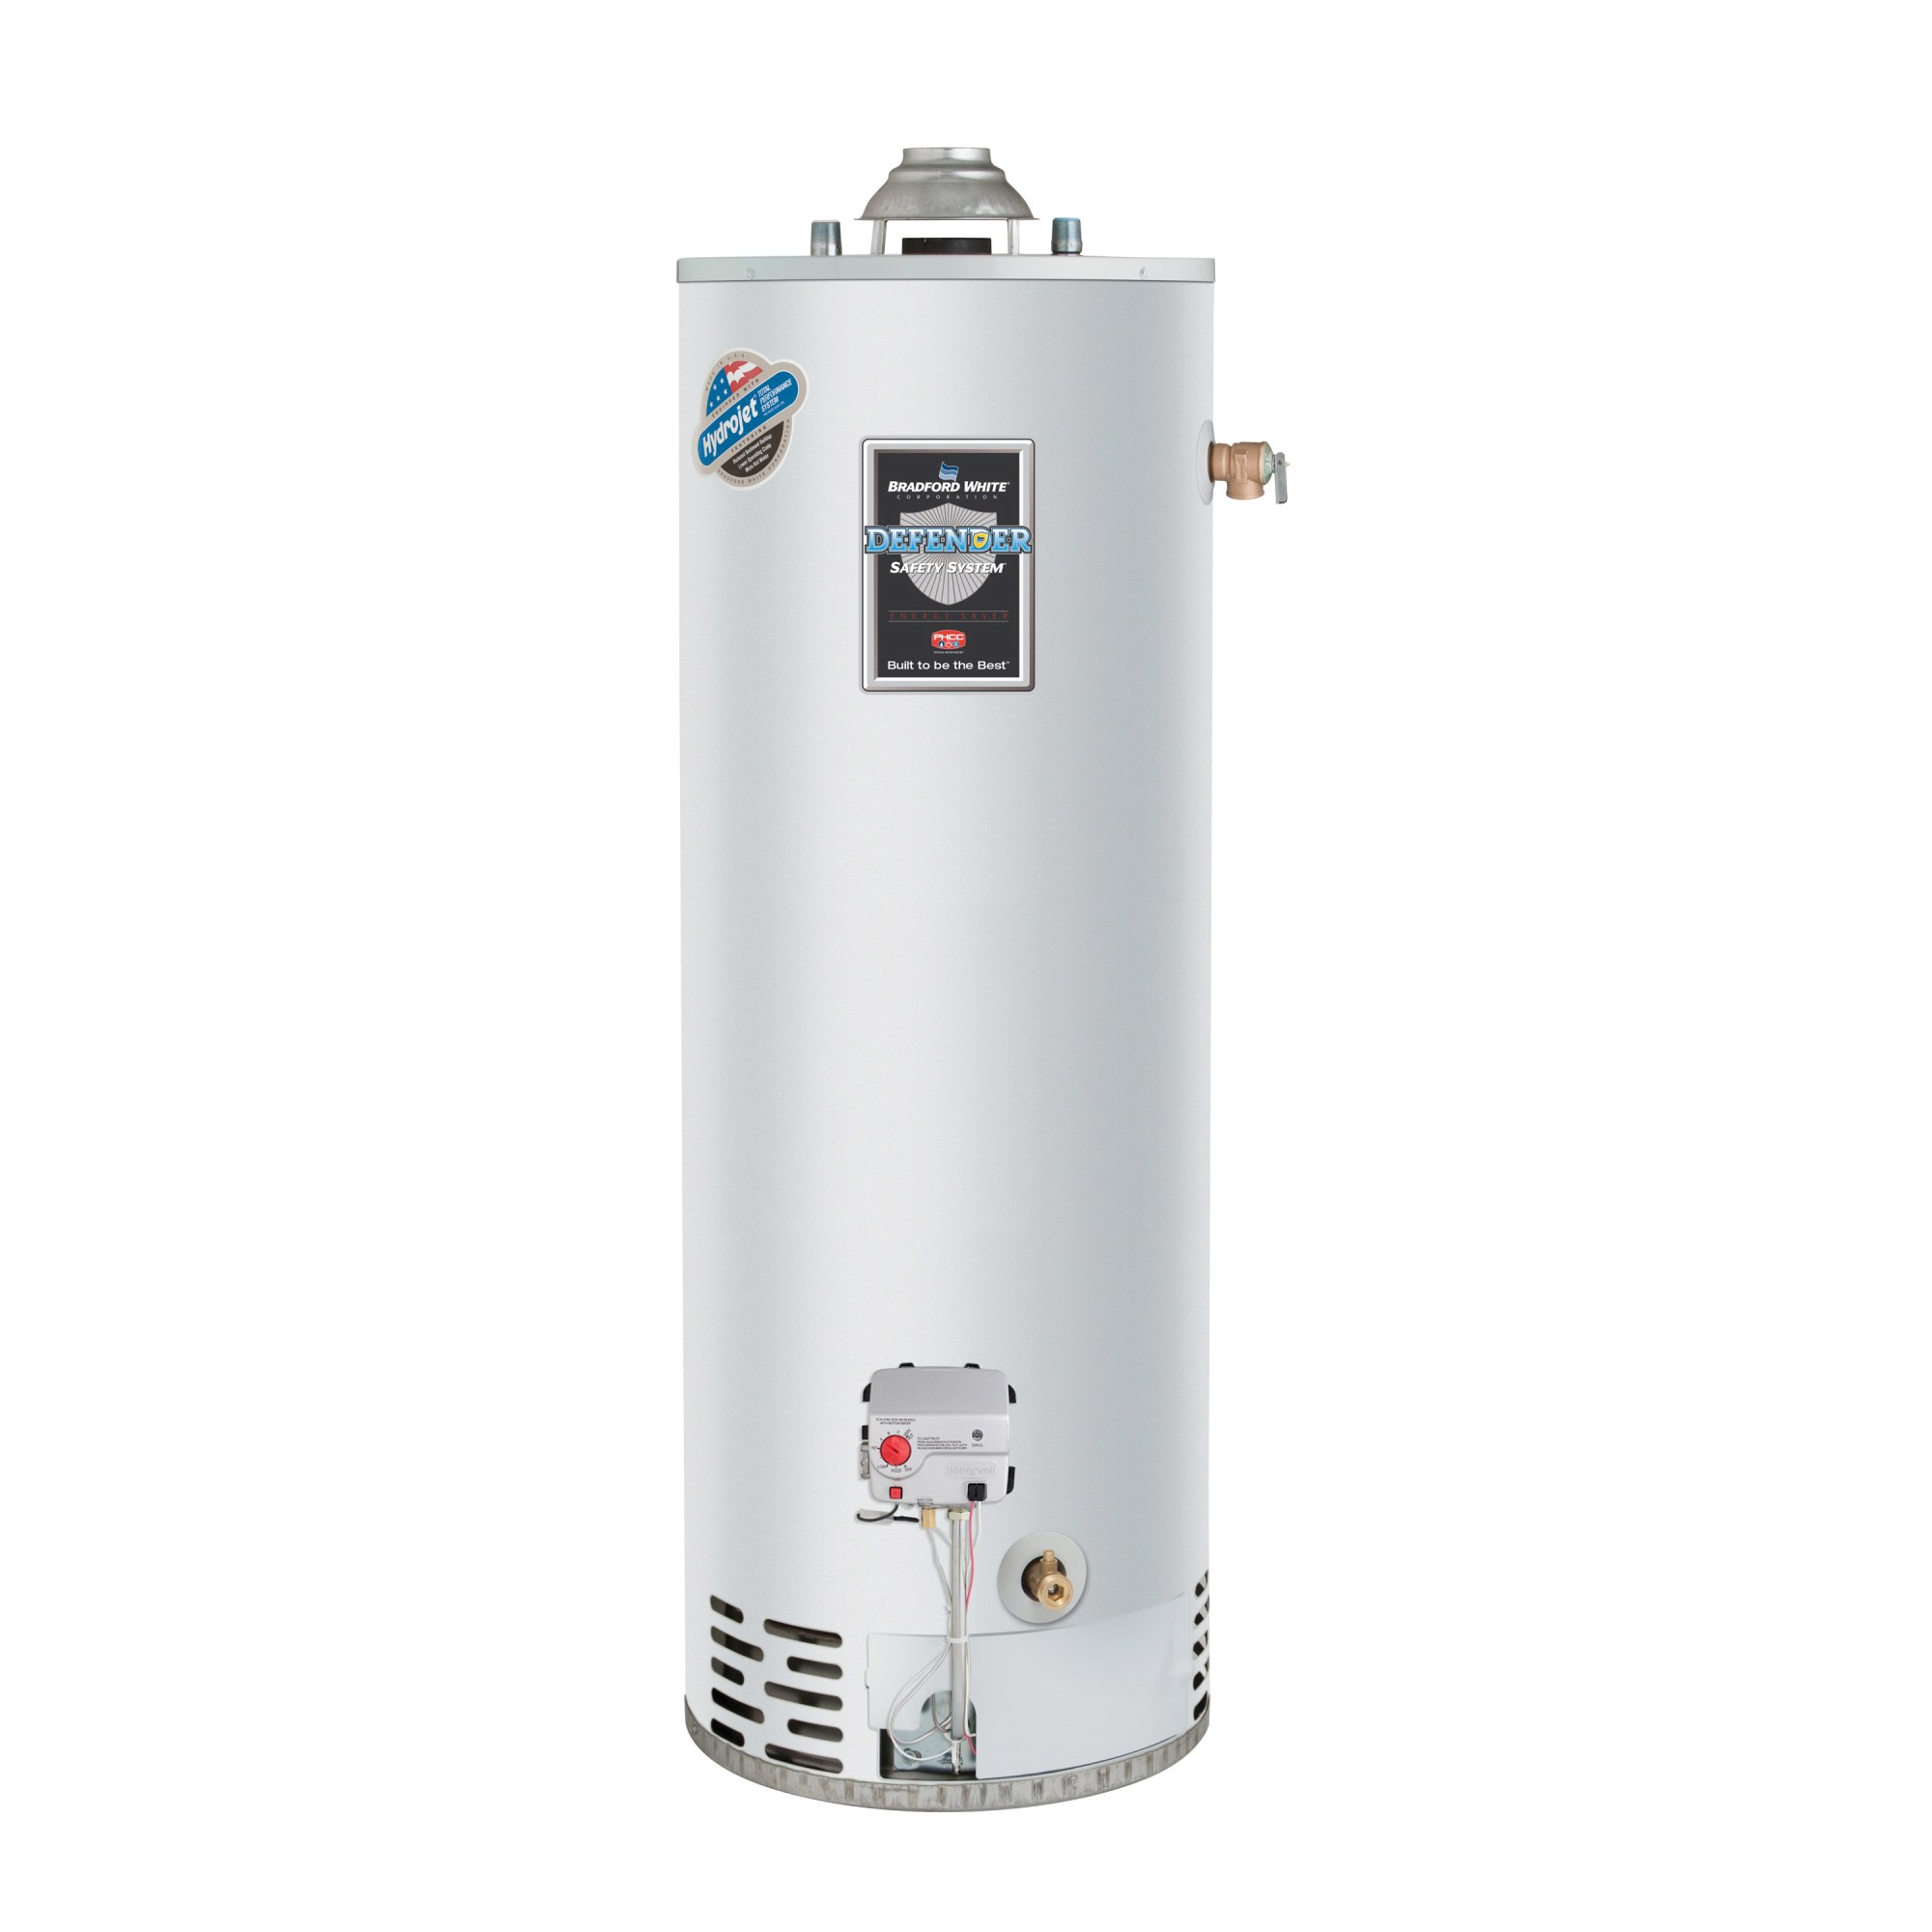 hight resolution of bradford white rg240t6n 40 gal defender safety system atmospheric vent energy saver natural gas tall water